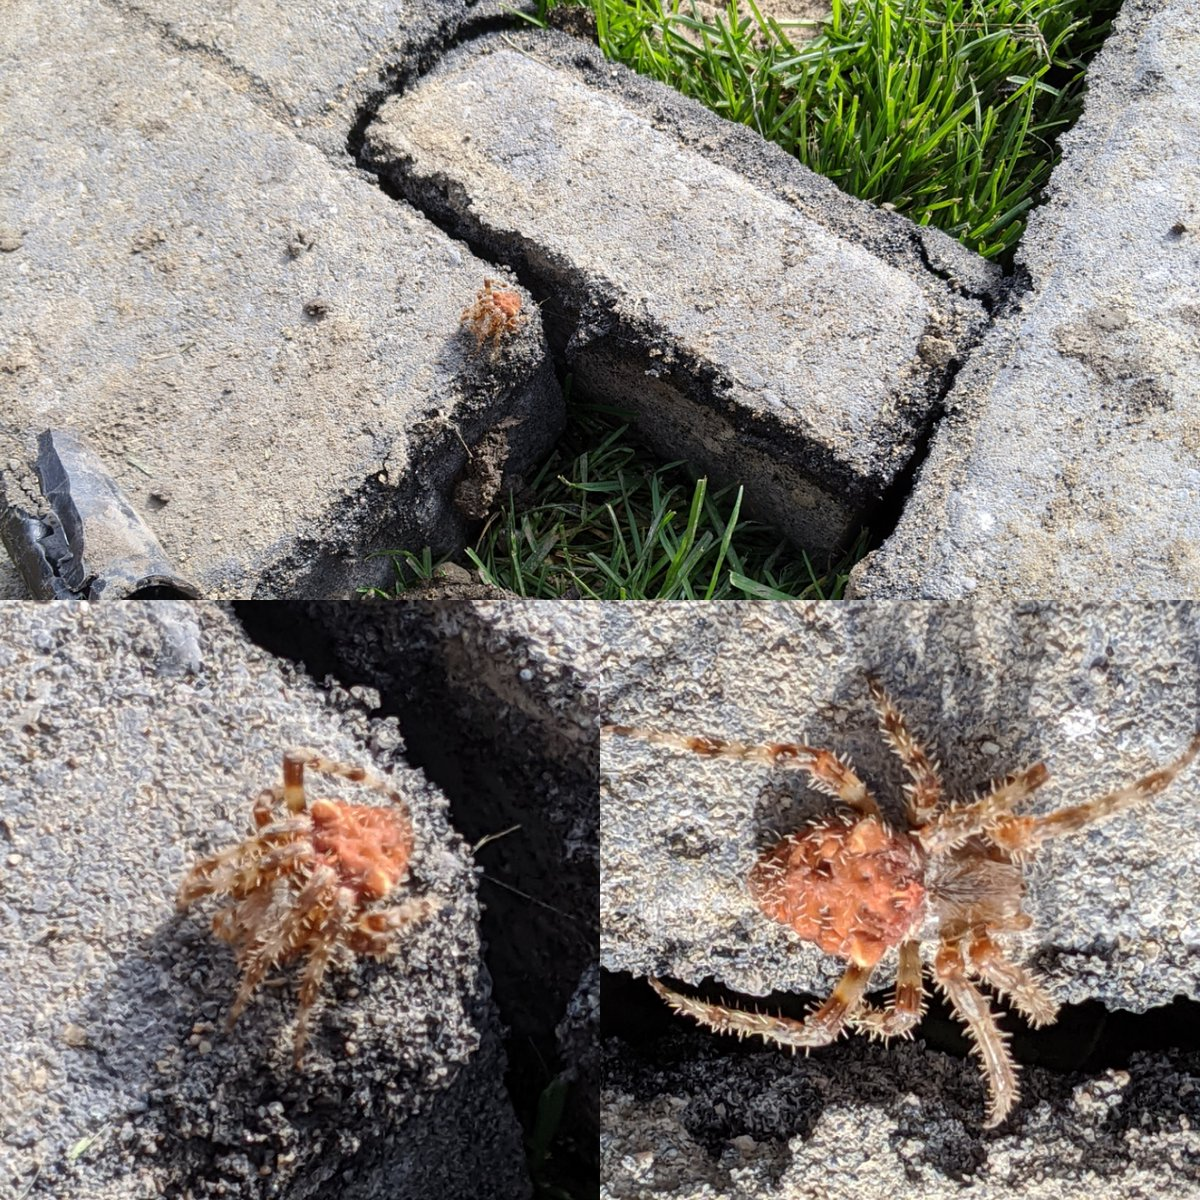 Always running into all kinds things #landscaping but this is my first encounter with a #spider like this.  #landscapinglife #outdoors #garden #gardencreatures https://t.co/4qlhuIVve2